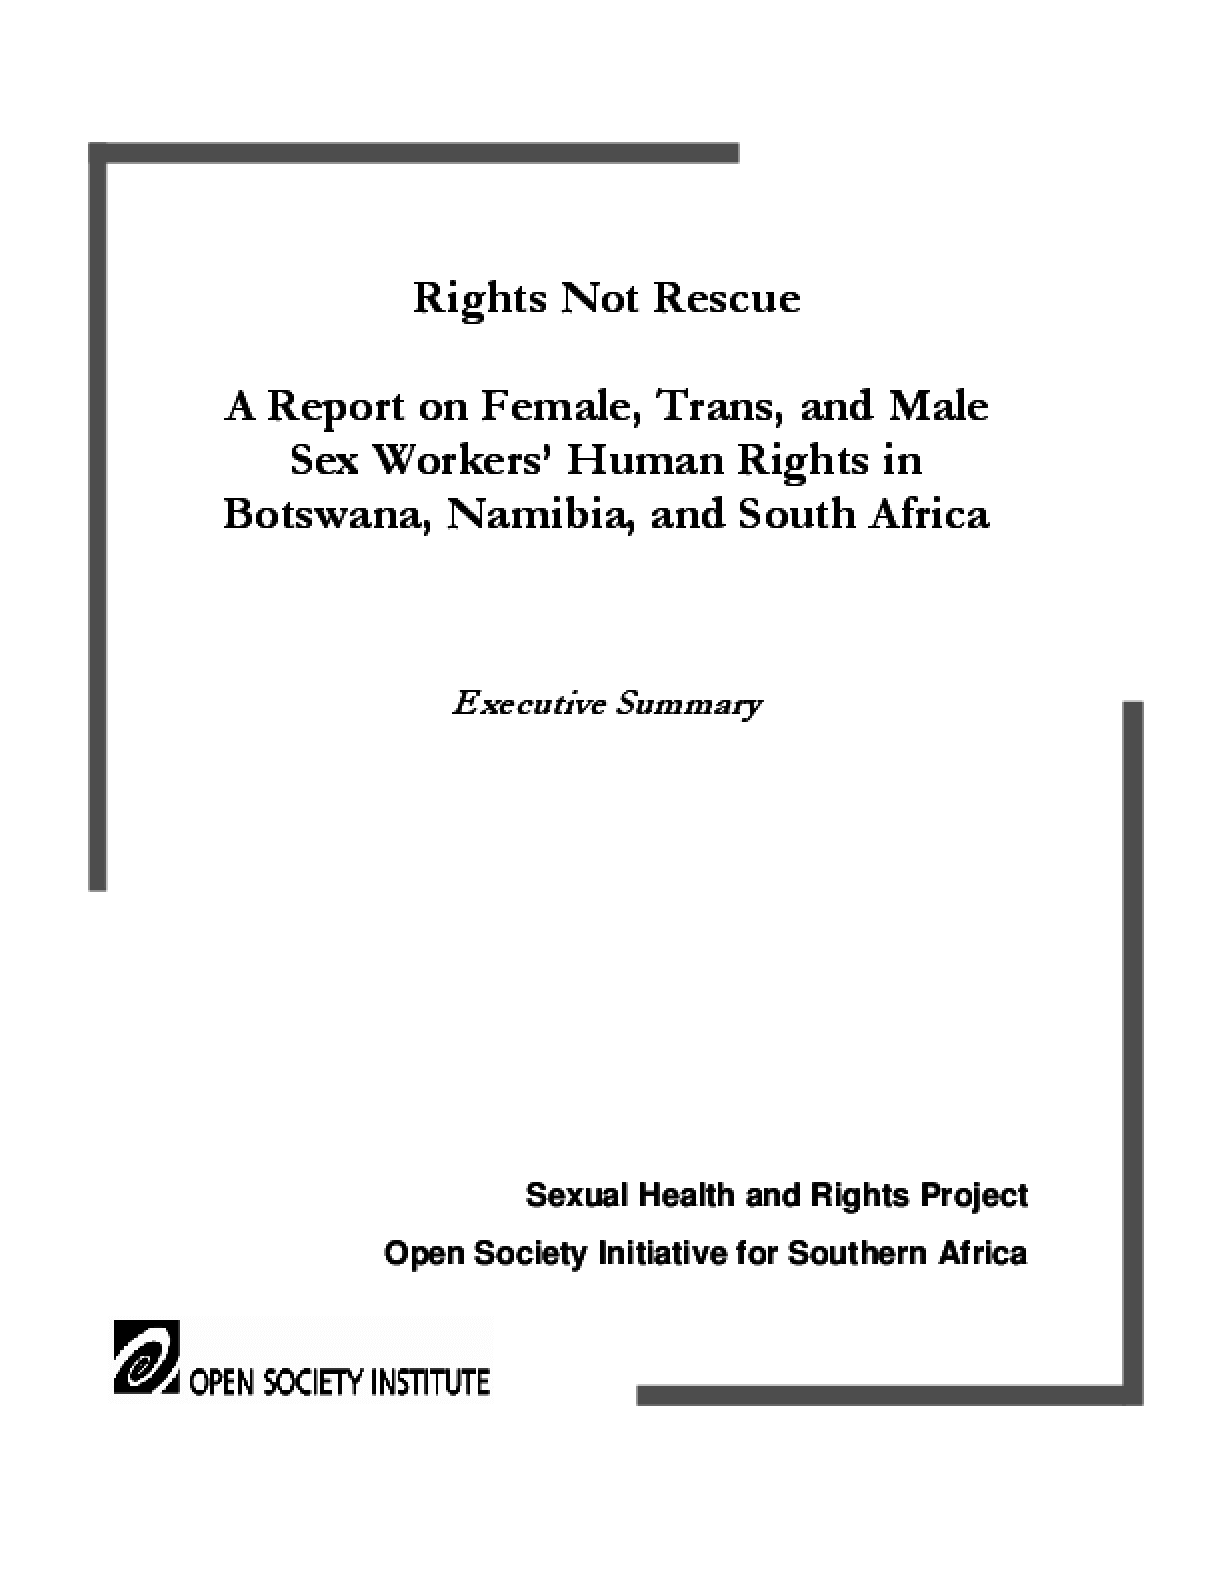 Rights Not Rescue: A Report on Female, Trans, and Male Sex Workers' Human Rights in Botswana, Namibia, and South Africa